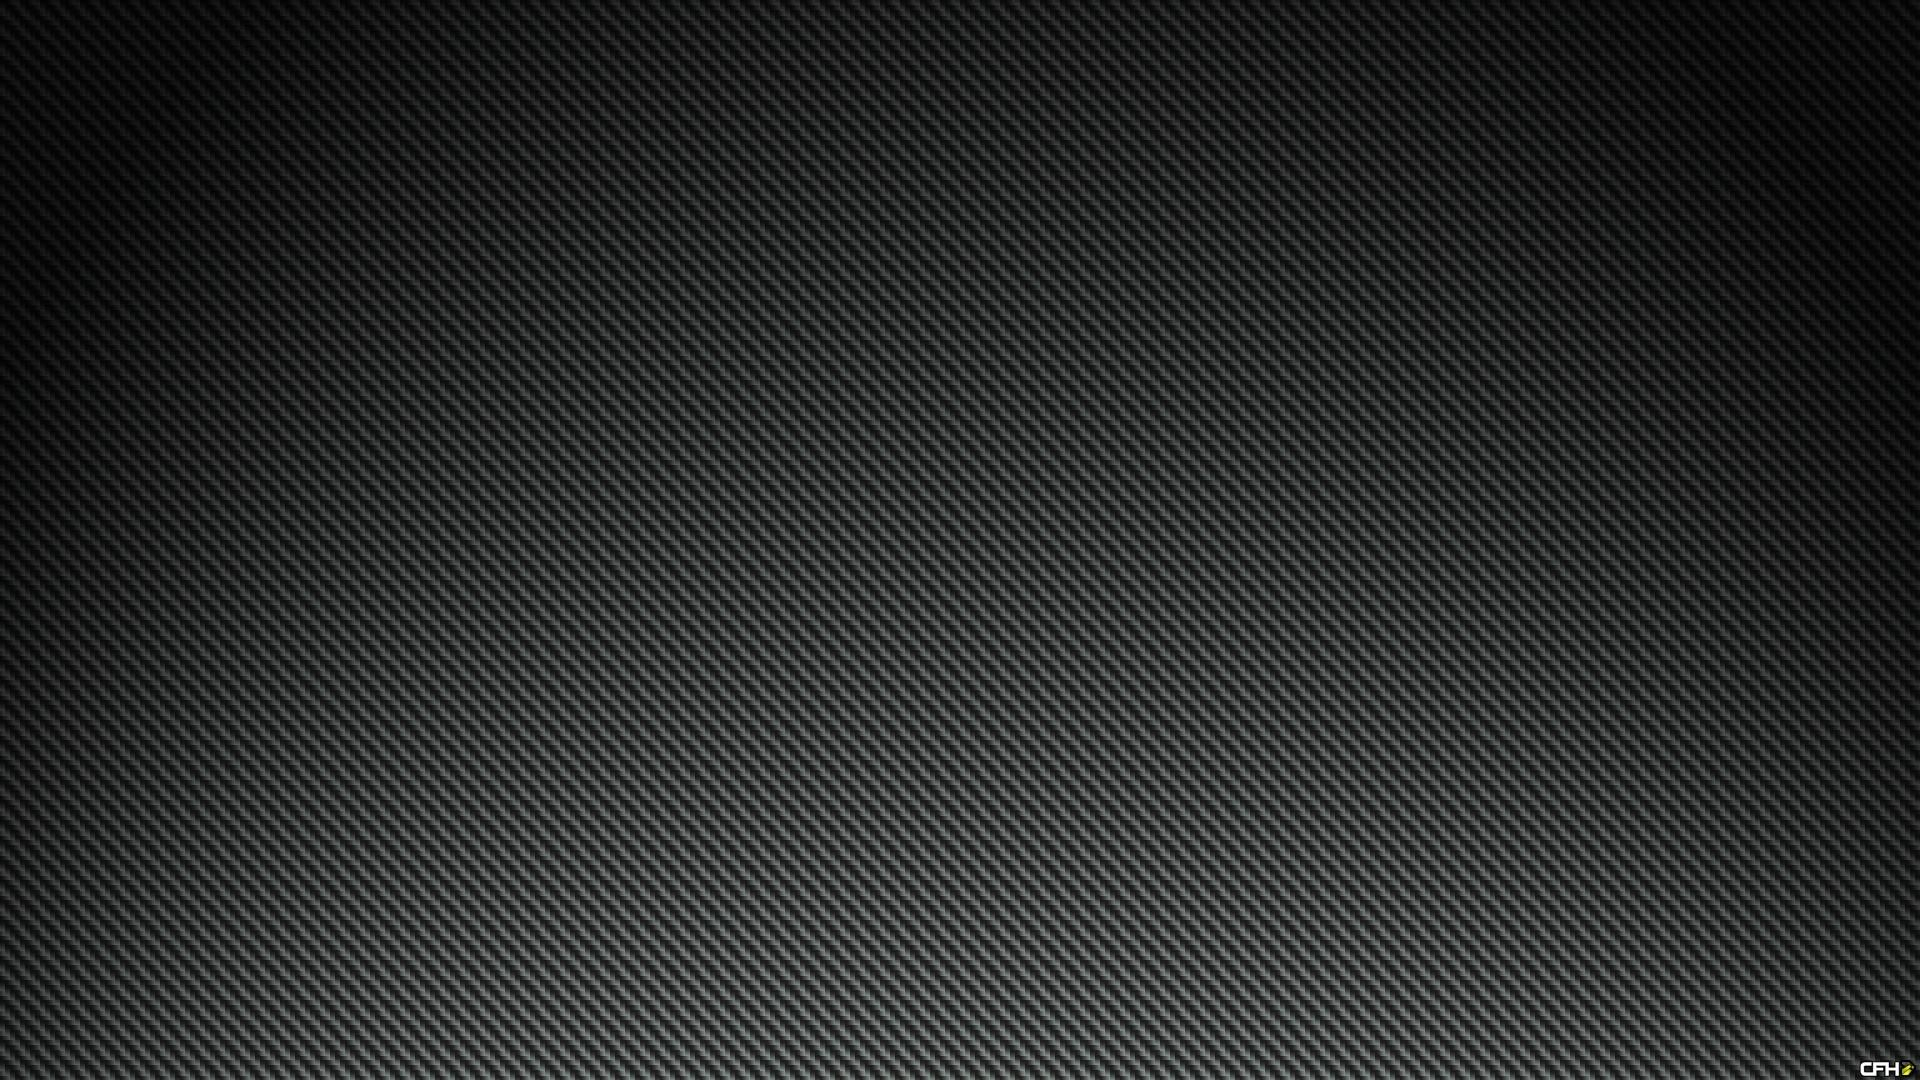 Download White Carbon Fiber Wallpaper Hd Backgrounds